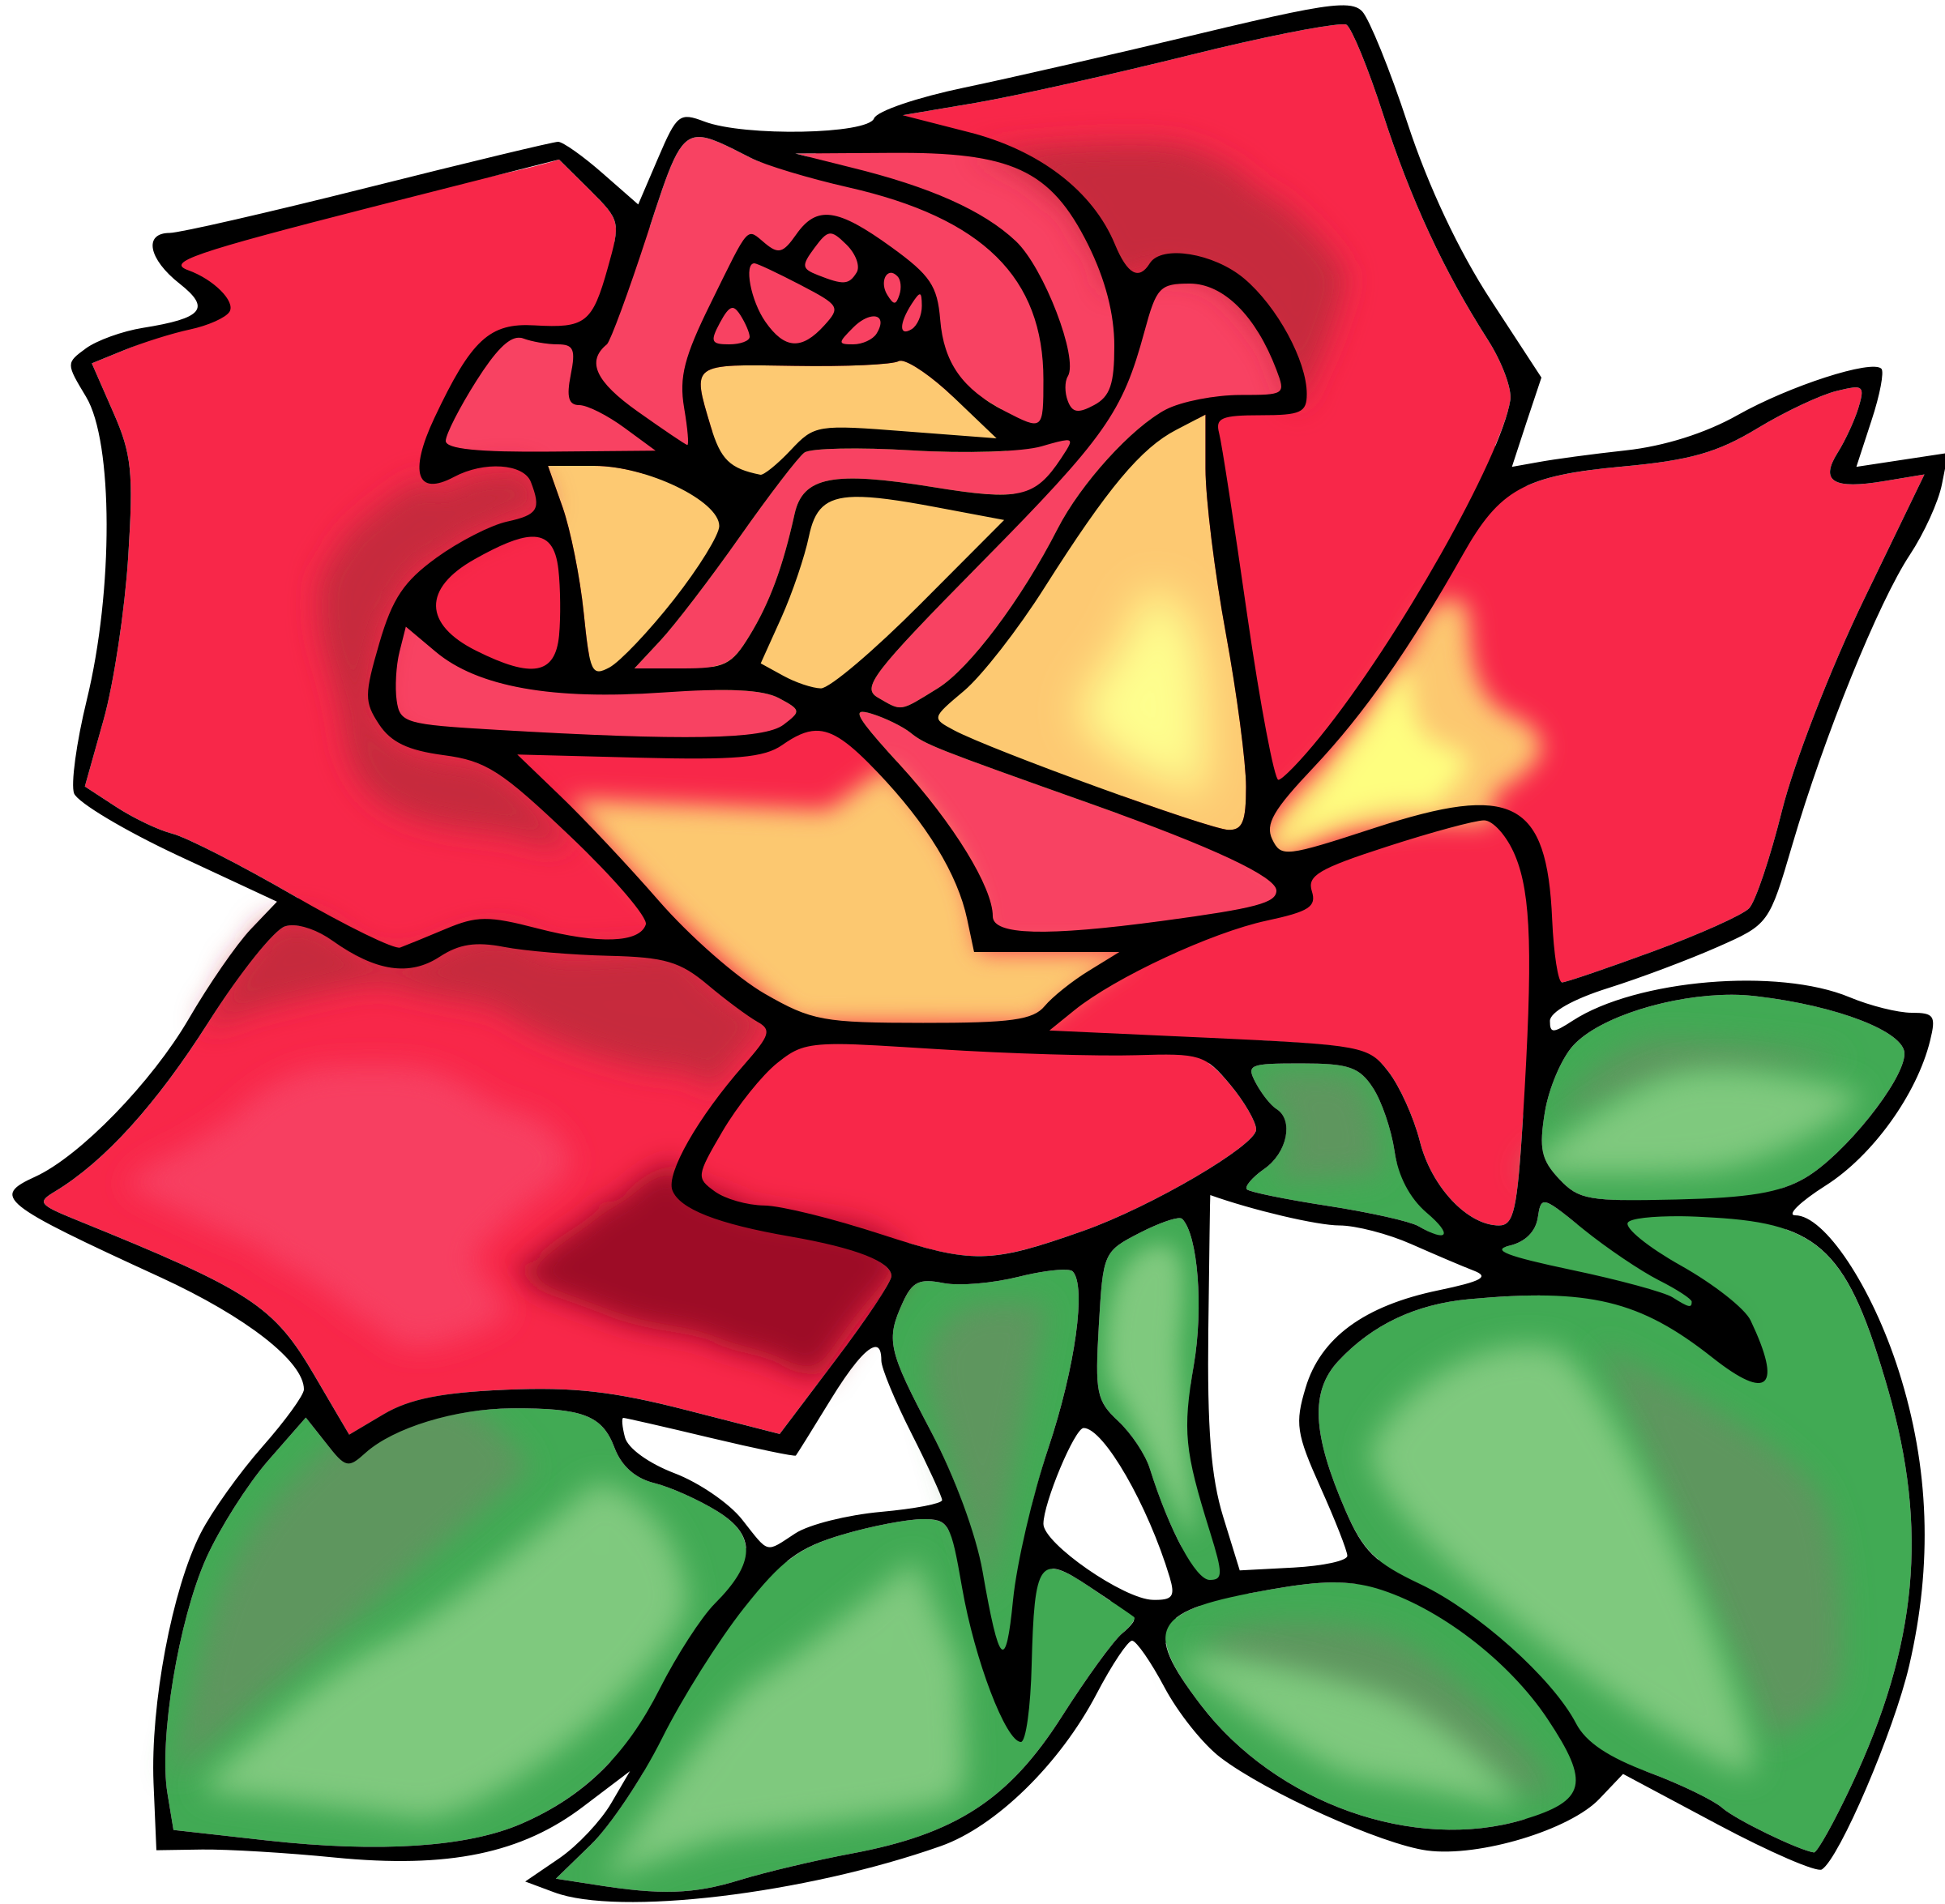 Rose clipart animated. Red big image png